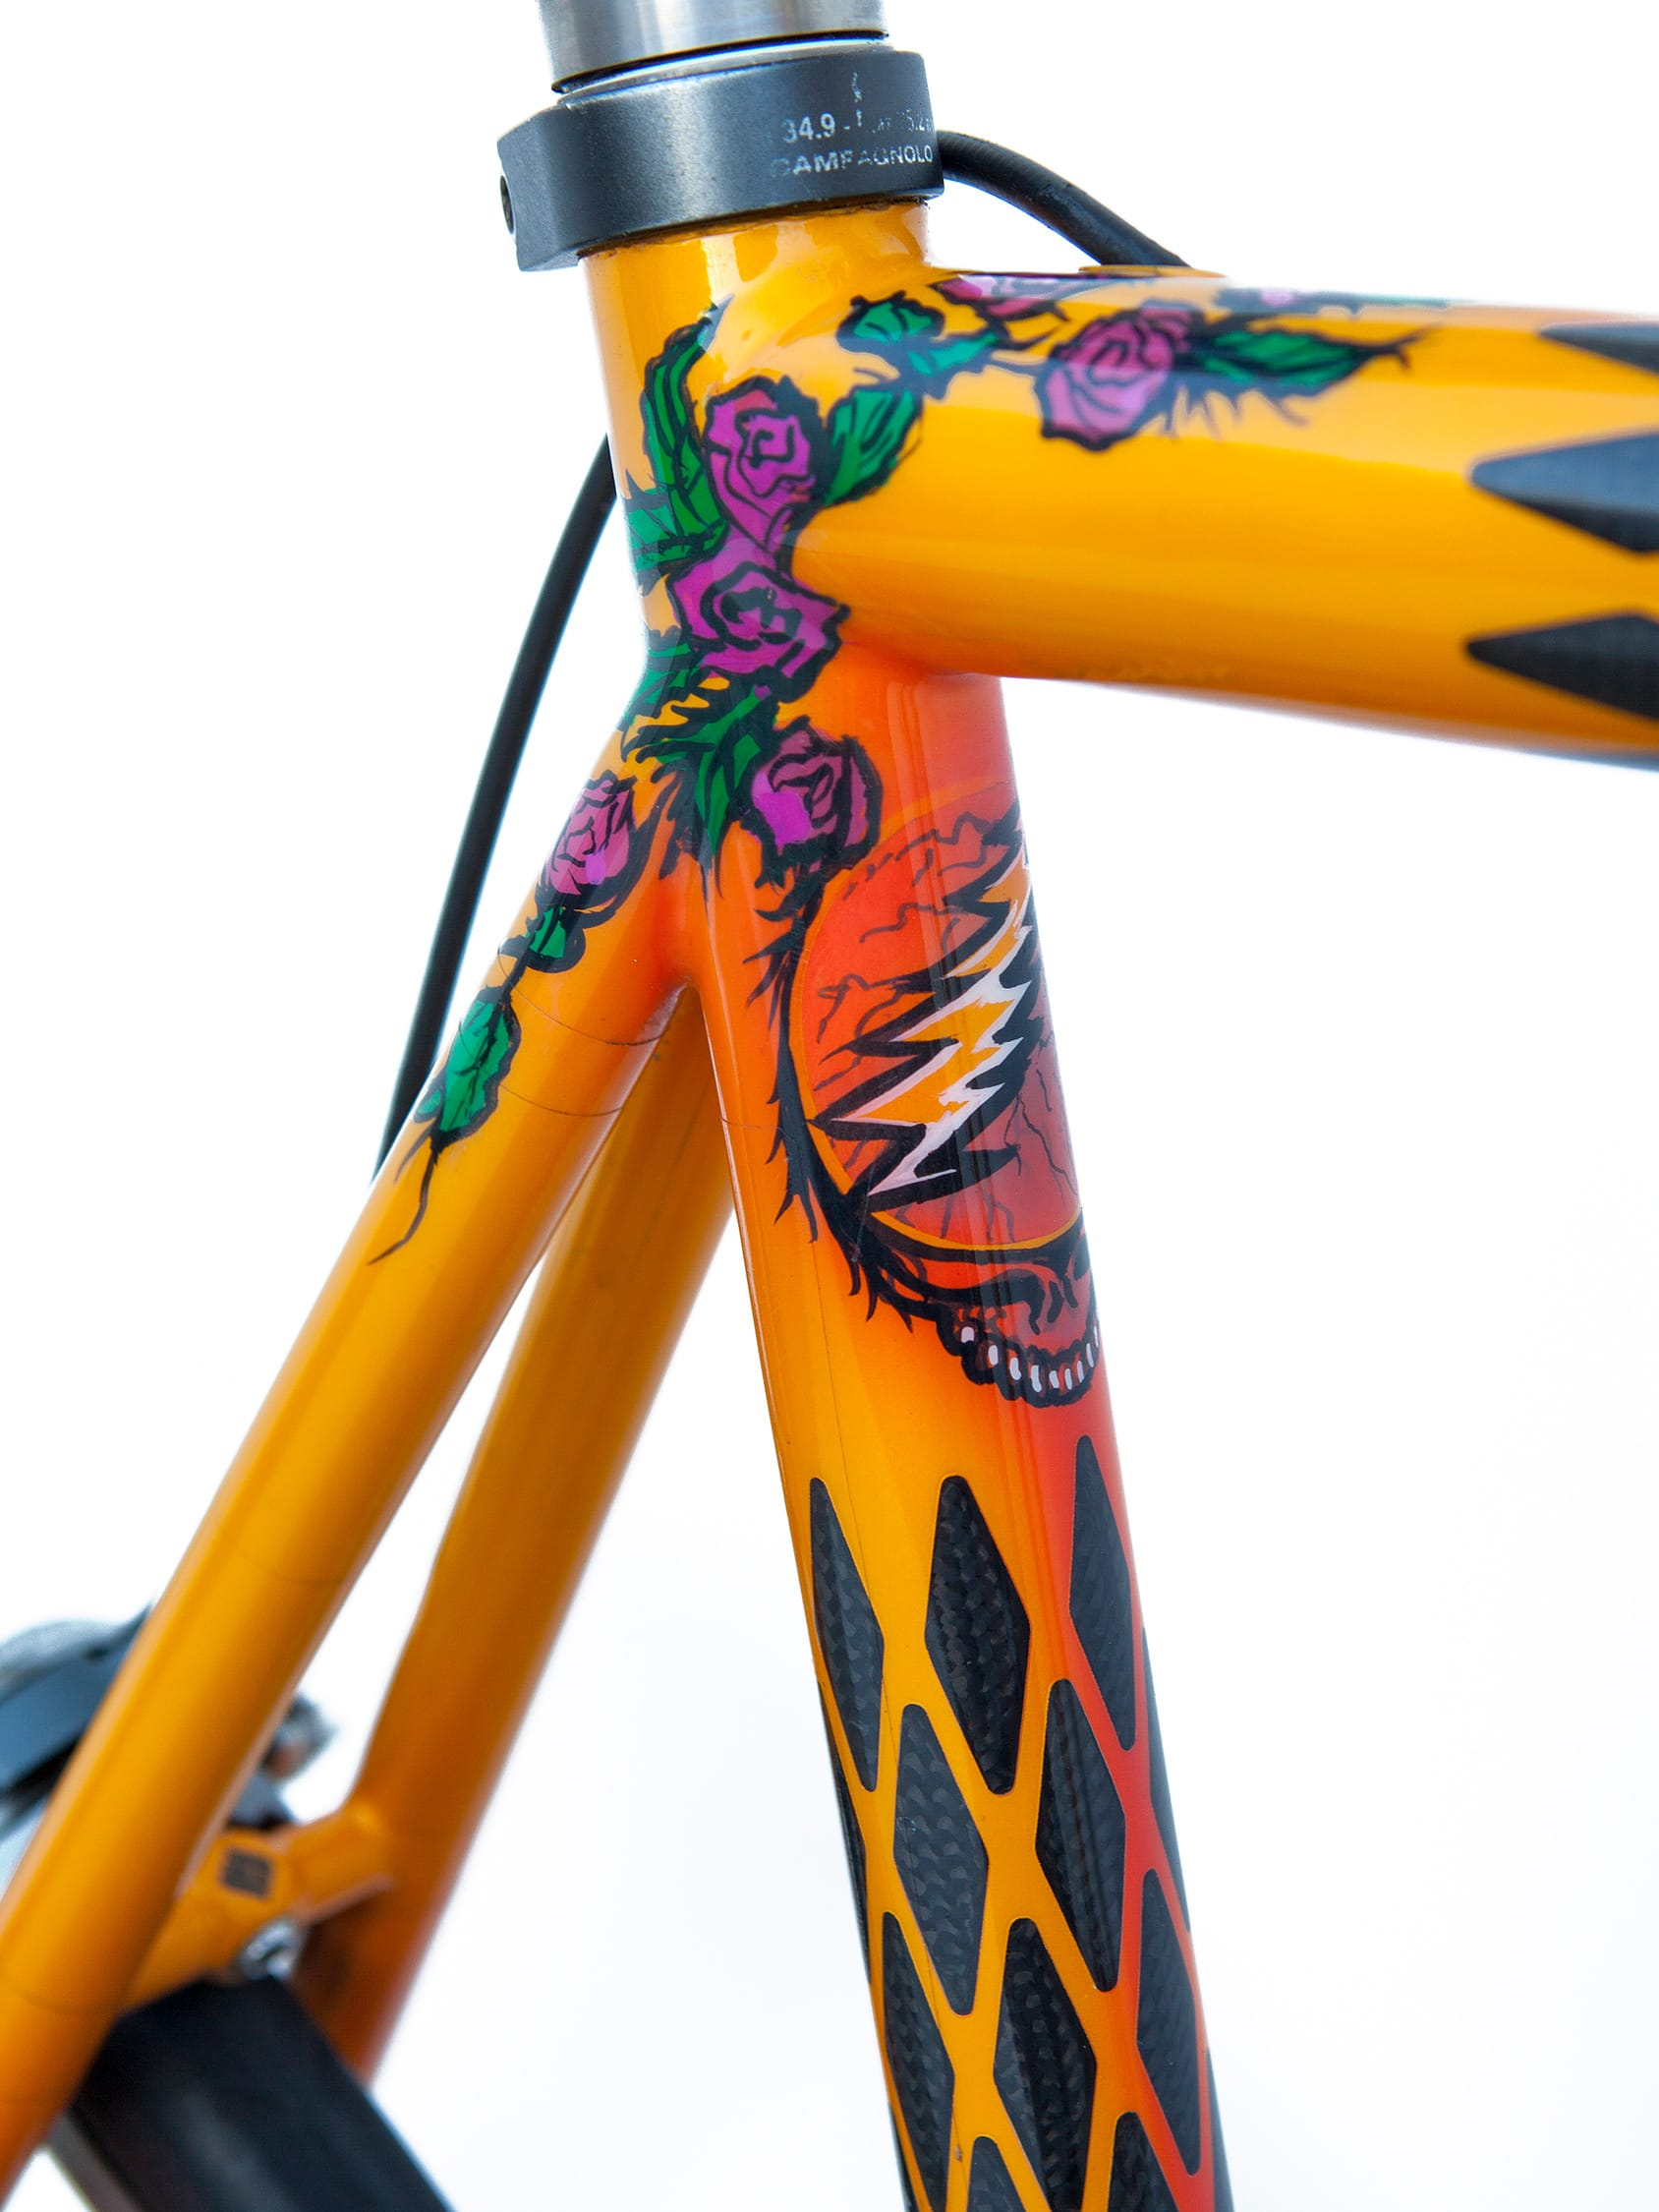 seat tube and stays detail